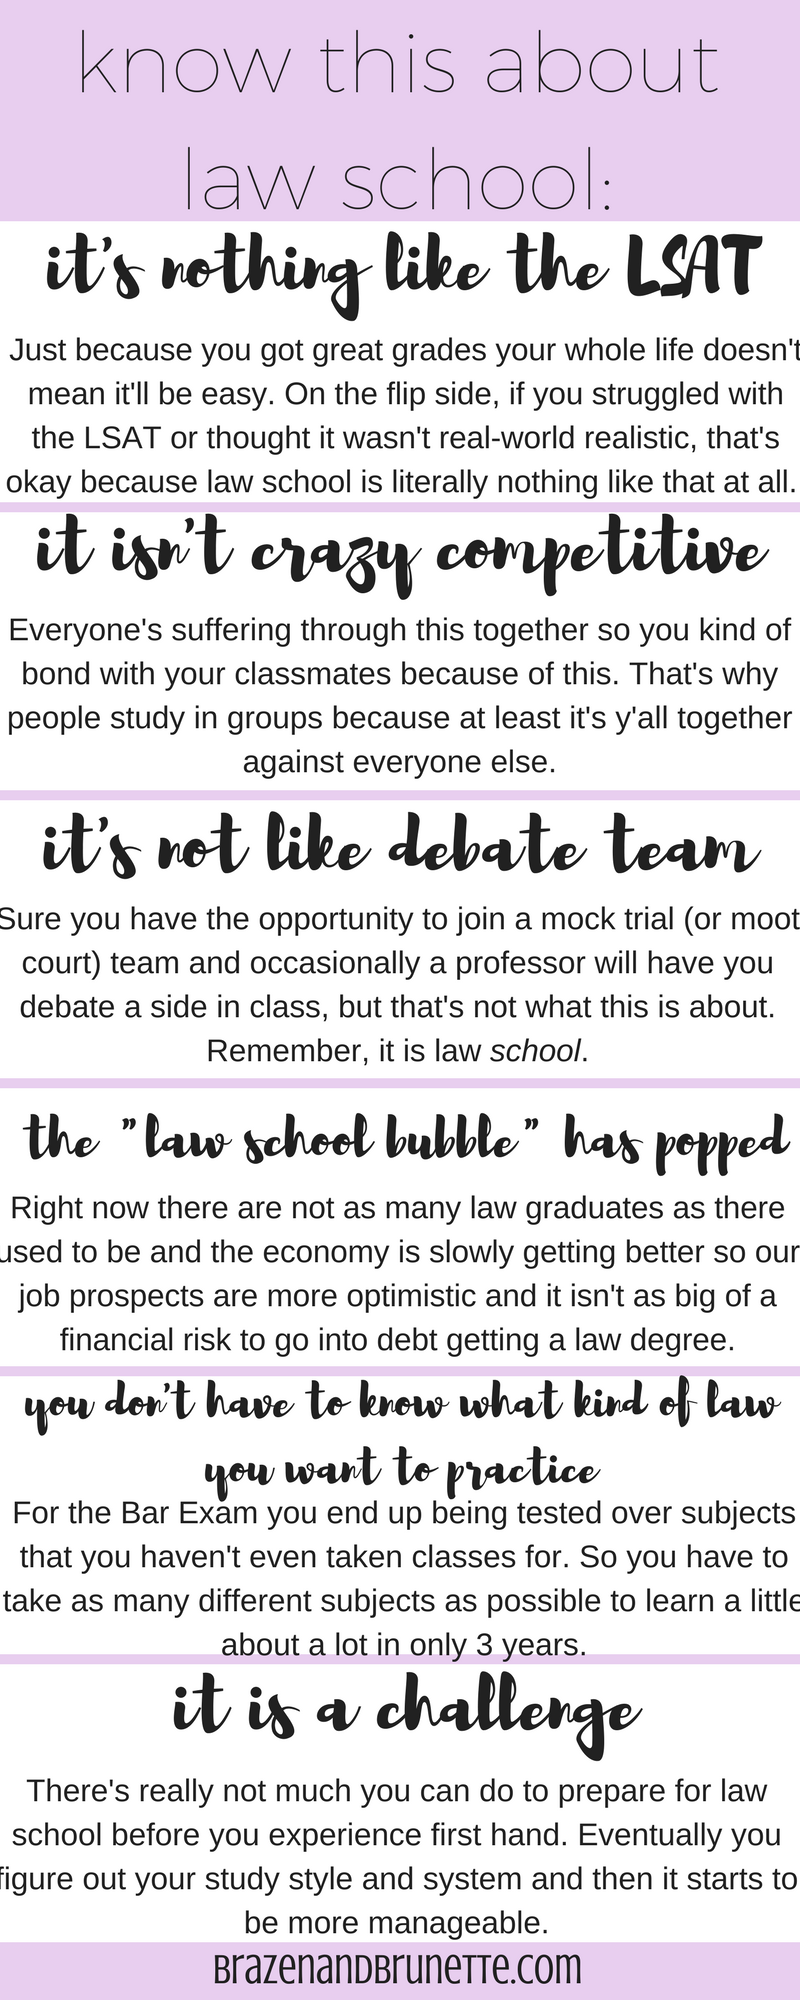 Should you go to law school school lawyer and college 11 things to consider before applying to law school brazenandbrunette fandeluxe Image collections